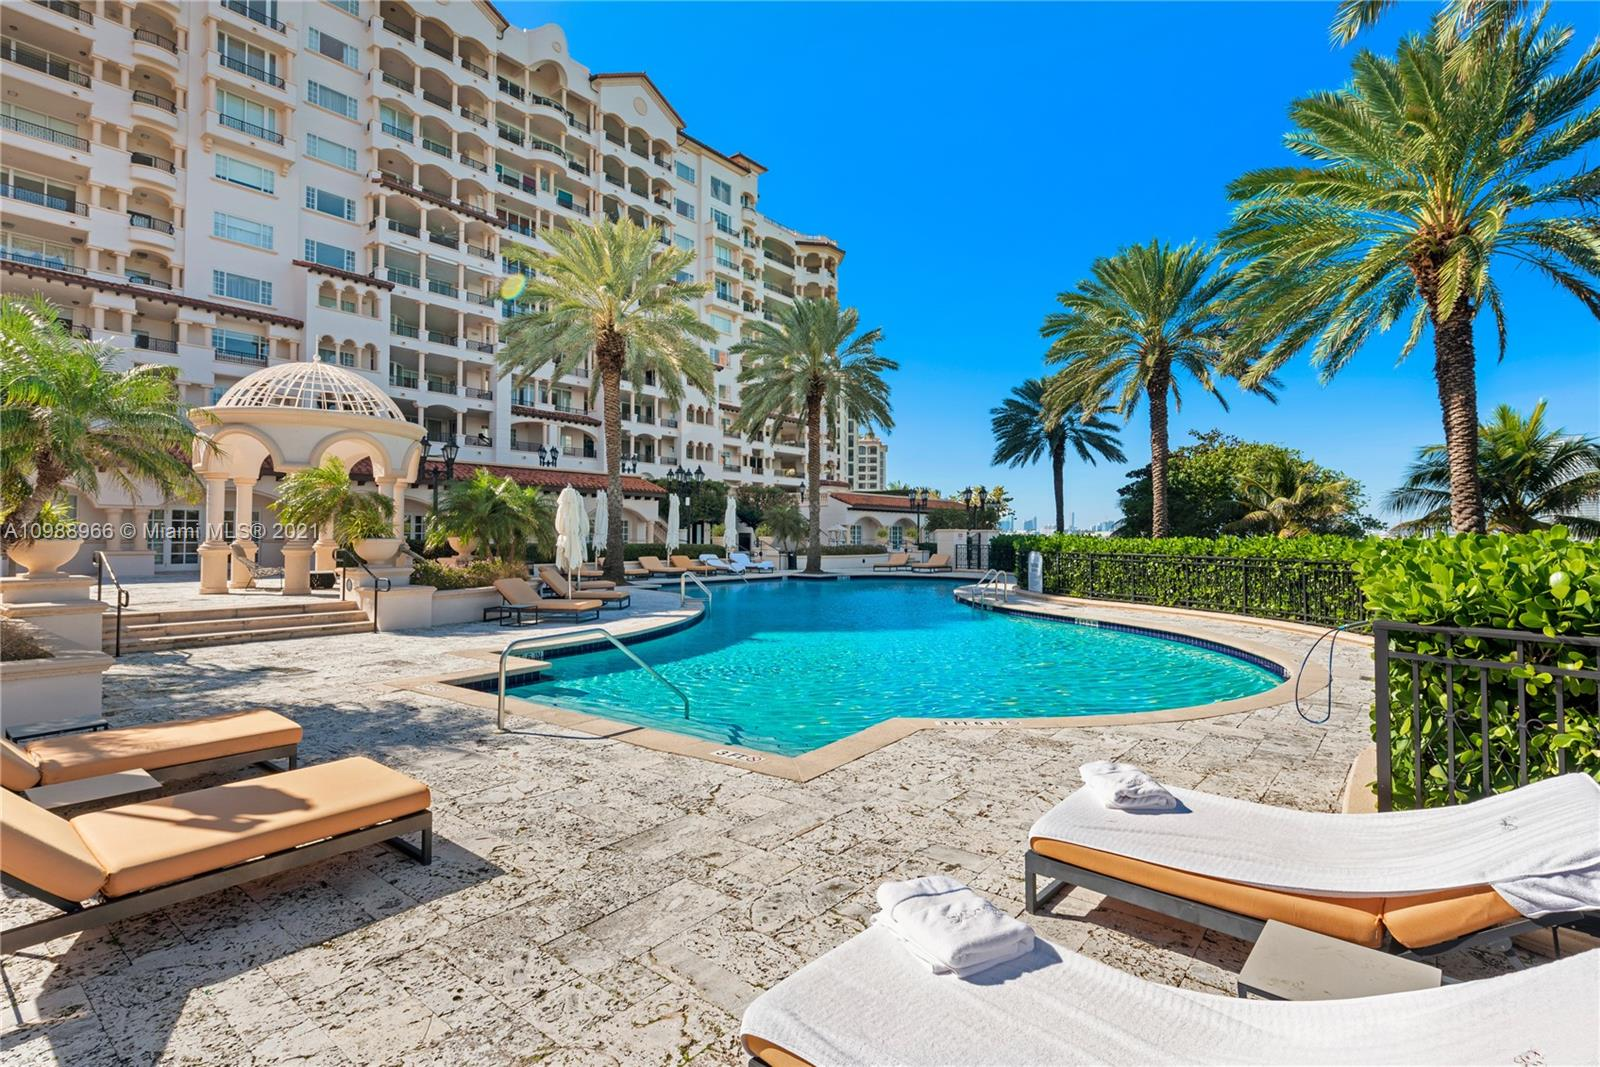 Listing Image 7192 Fisher Island Dr #7192